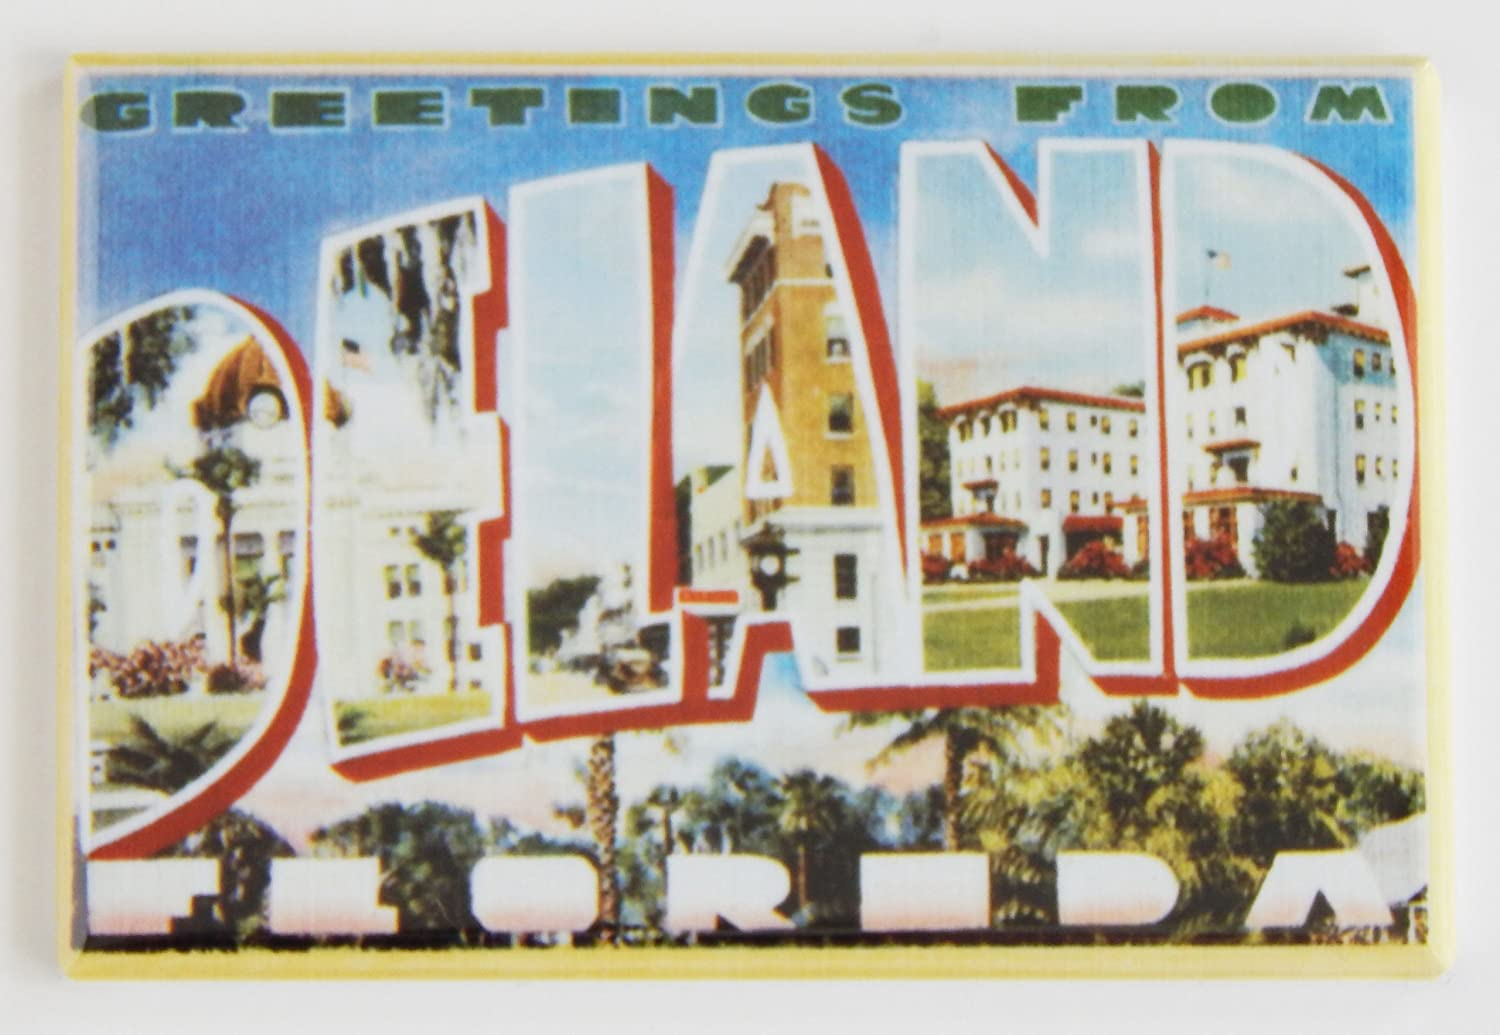 Amazon Com Greetings From Deland Florida Fridge Magnet 1 75 X 2 75 Inches Kitchen Dining